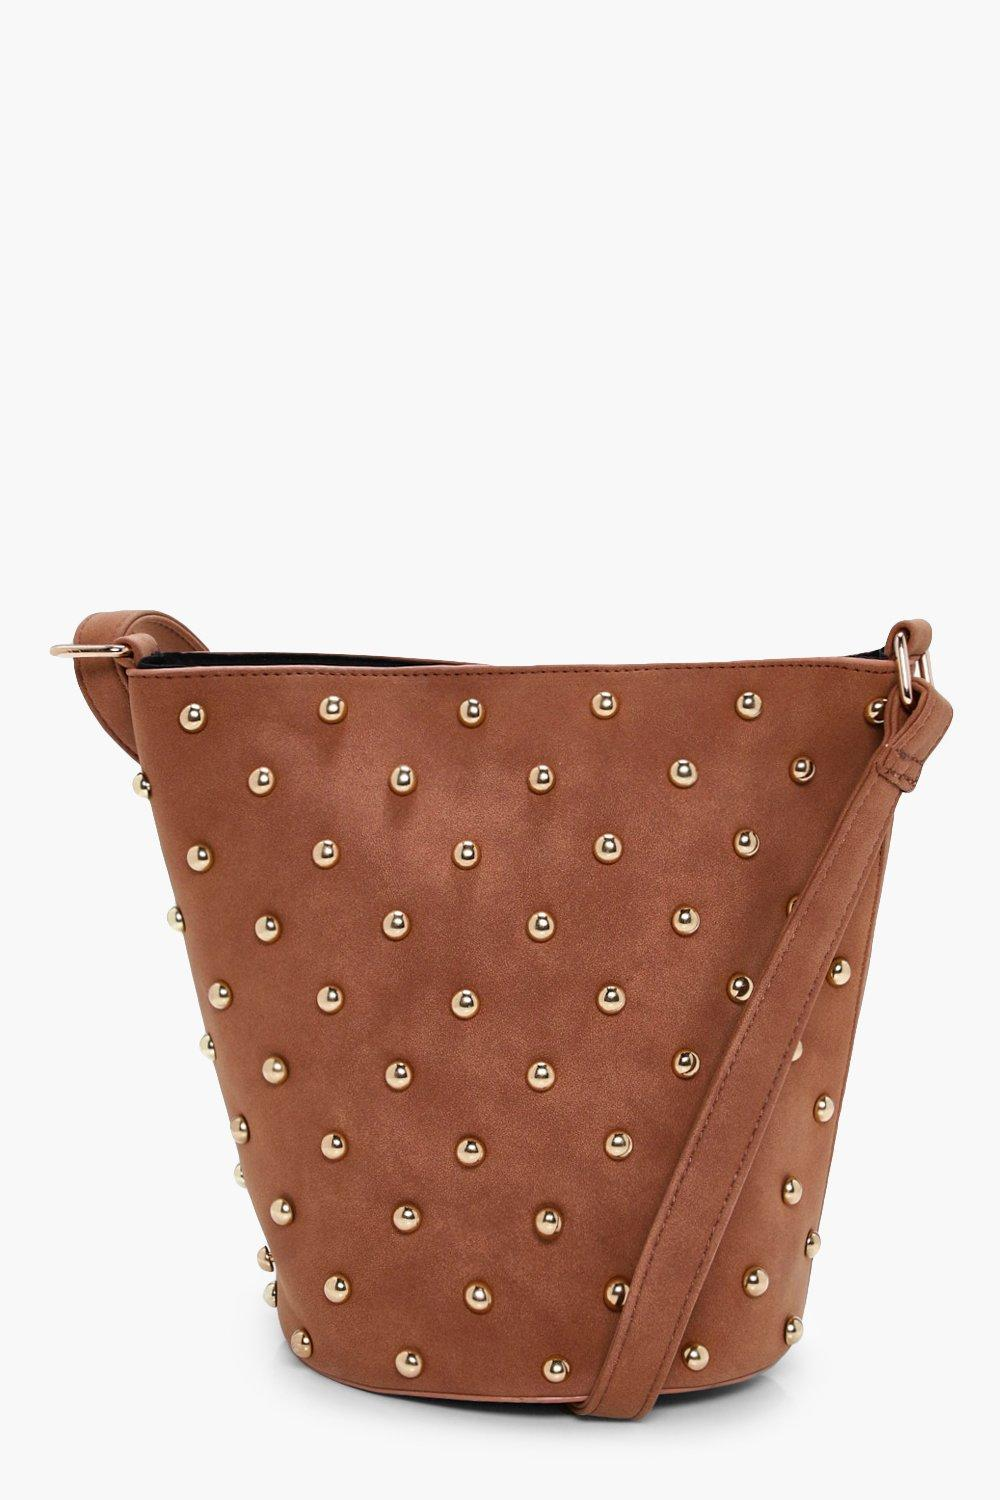 Studded Suedette Cross Body Bag - tan - Clara Stud